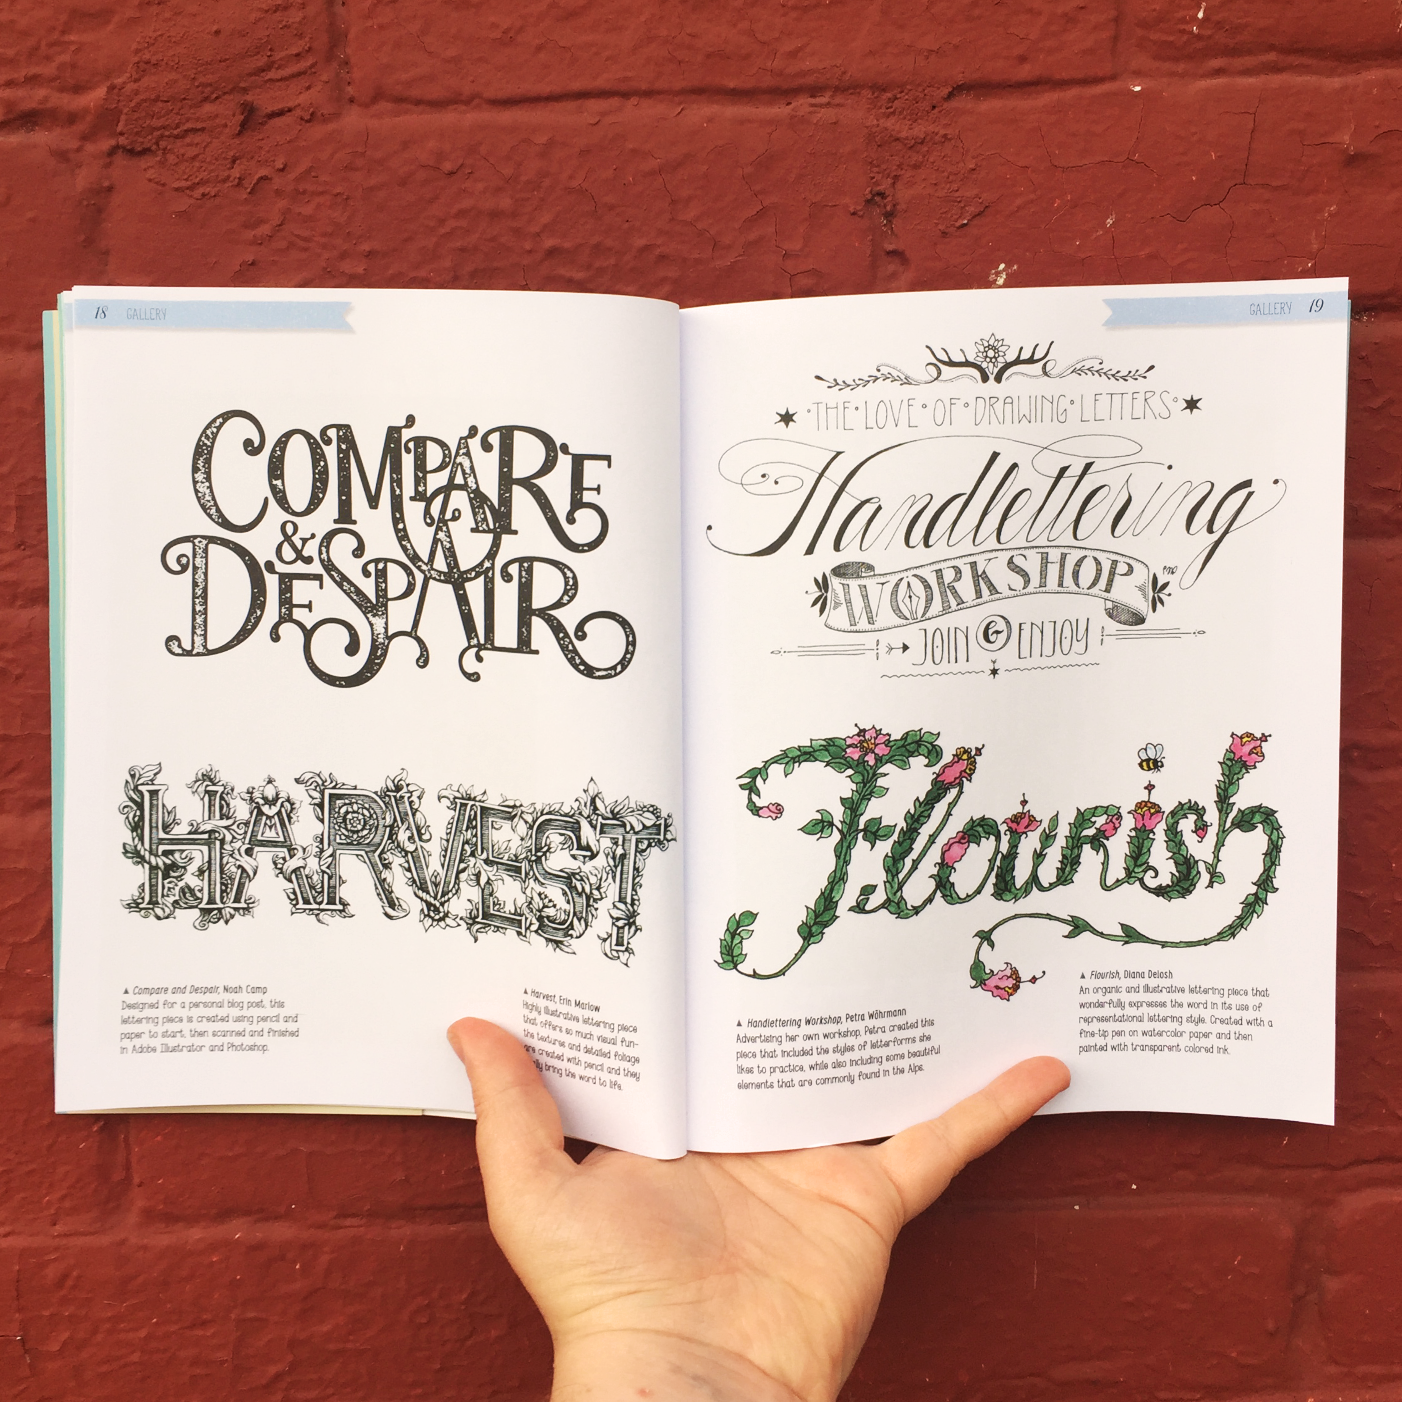 Compare and Despair Handlettering by Noah Camp